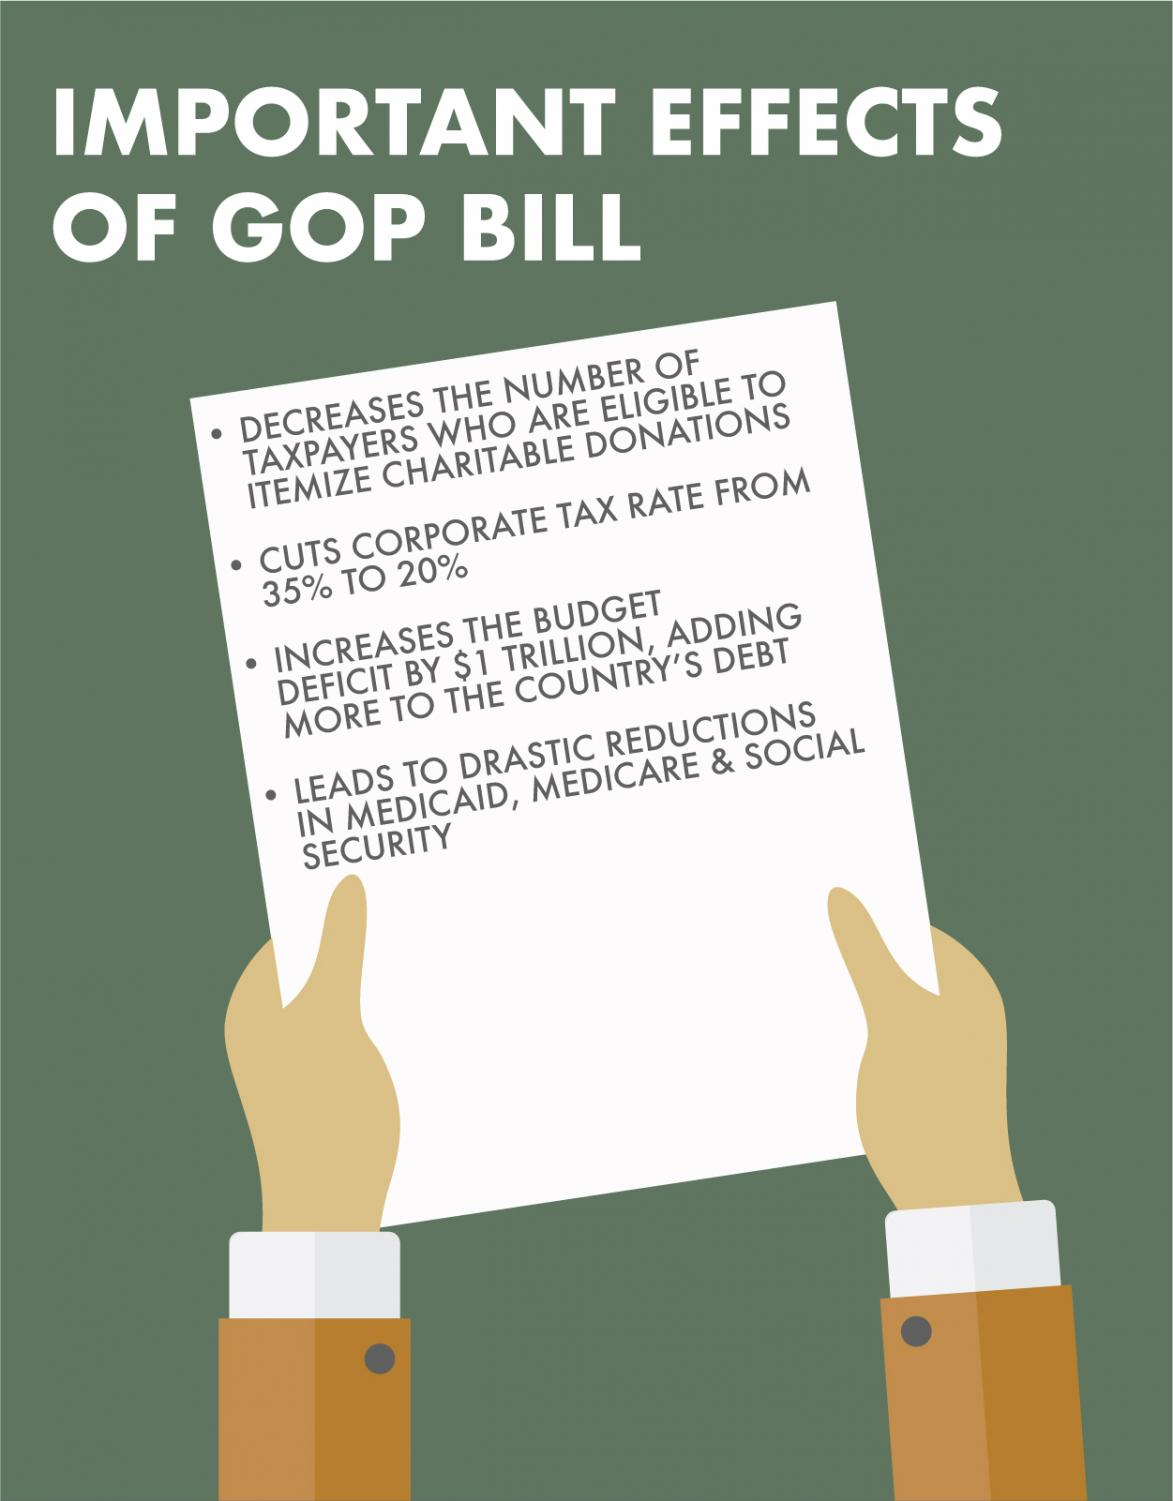 GOP approves 'reform' bill,  taxes become treacherous